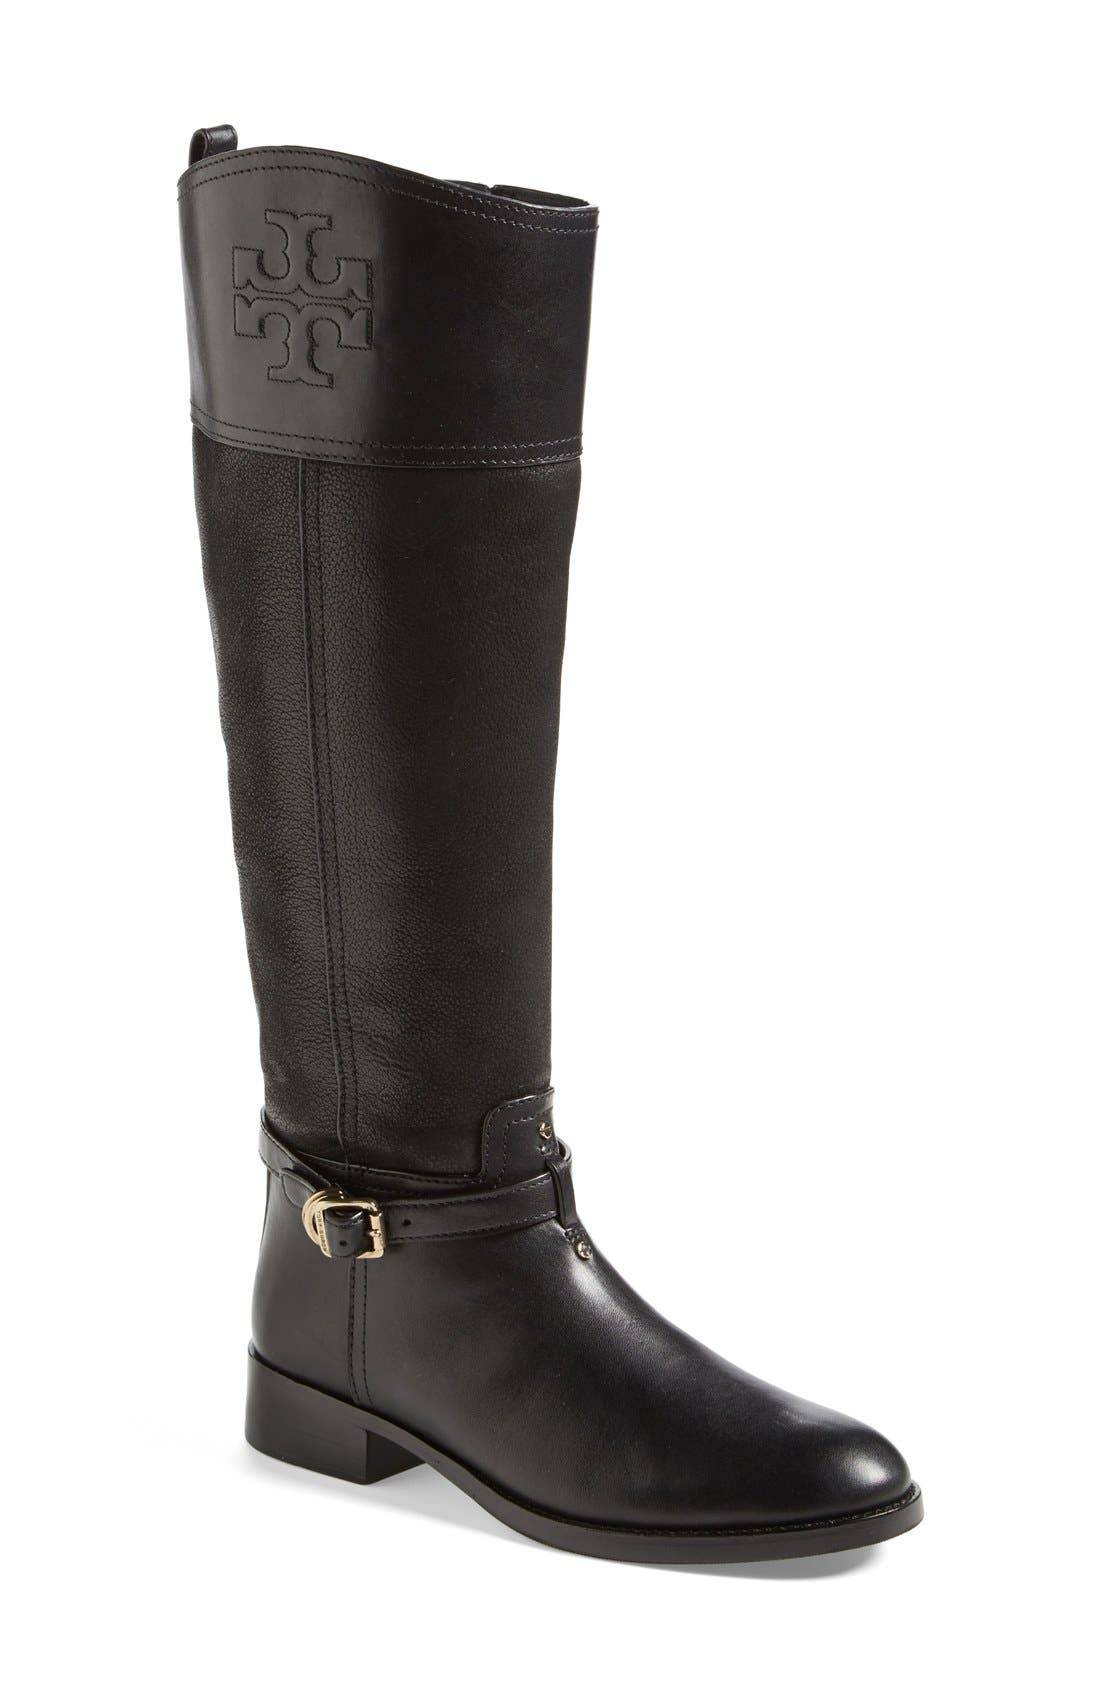 Alternate Image 1 Selected - Tory Burch 'Simone' Riding Boot (Women) (Nordstrom Exclusive)